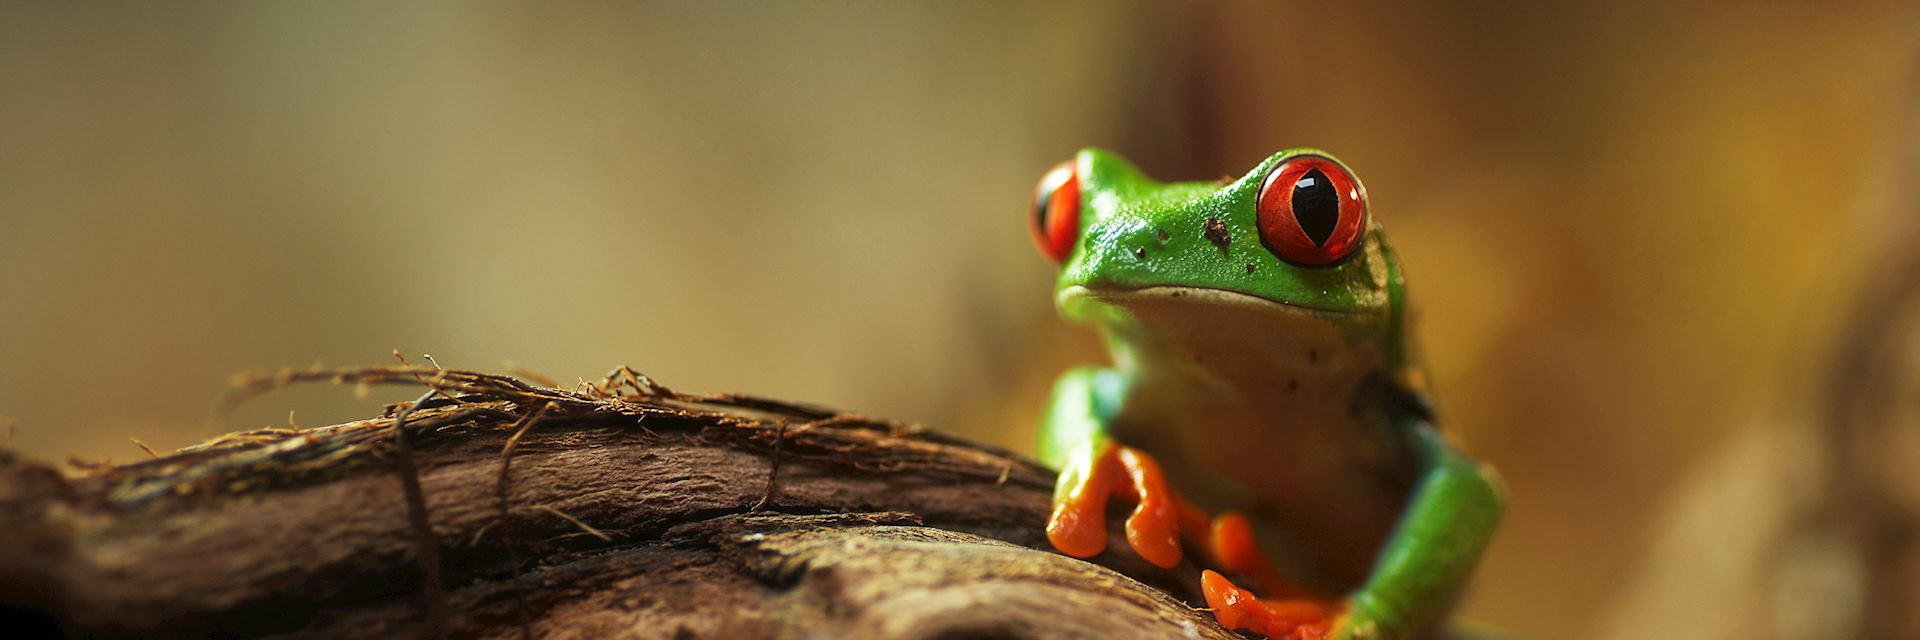 Red-eyed tree frog, Nicaragua